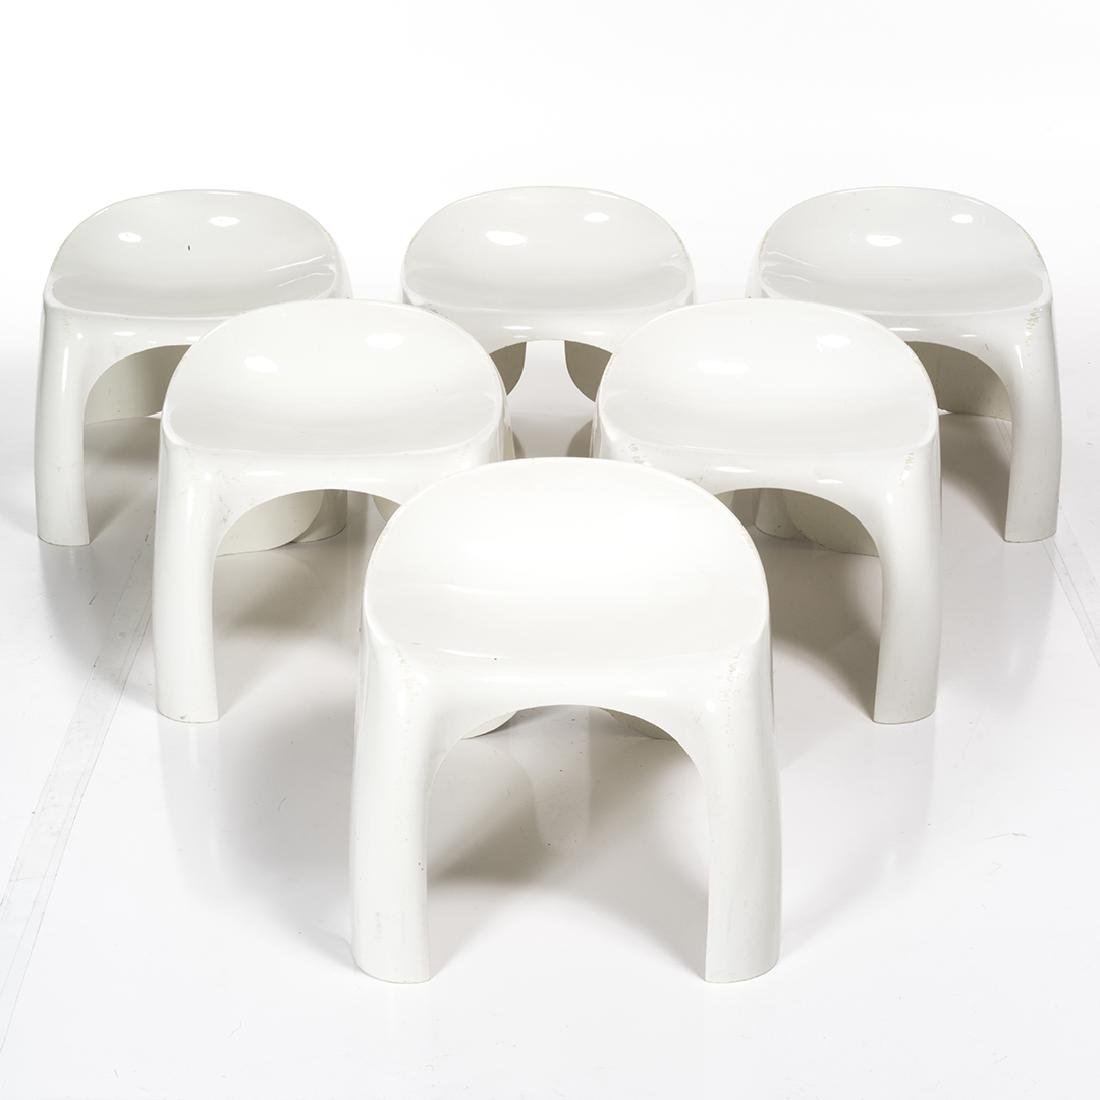 Stacy Dukes Efebo Stools (6) - 2